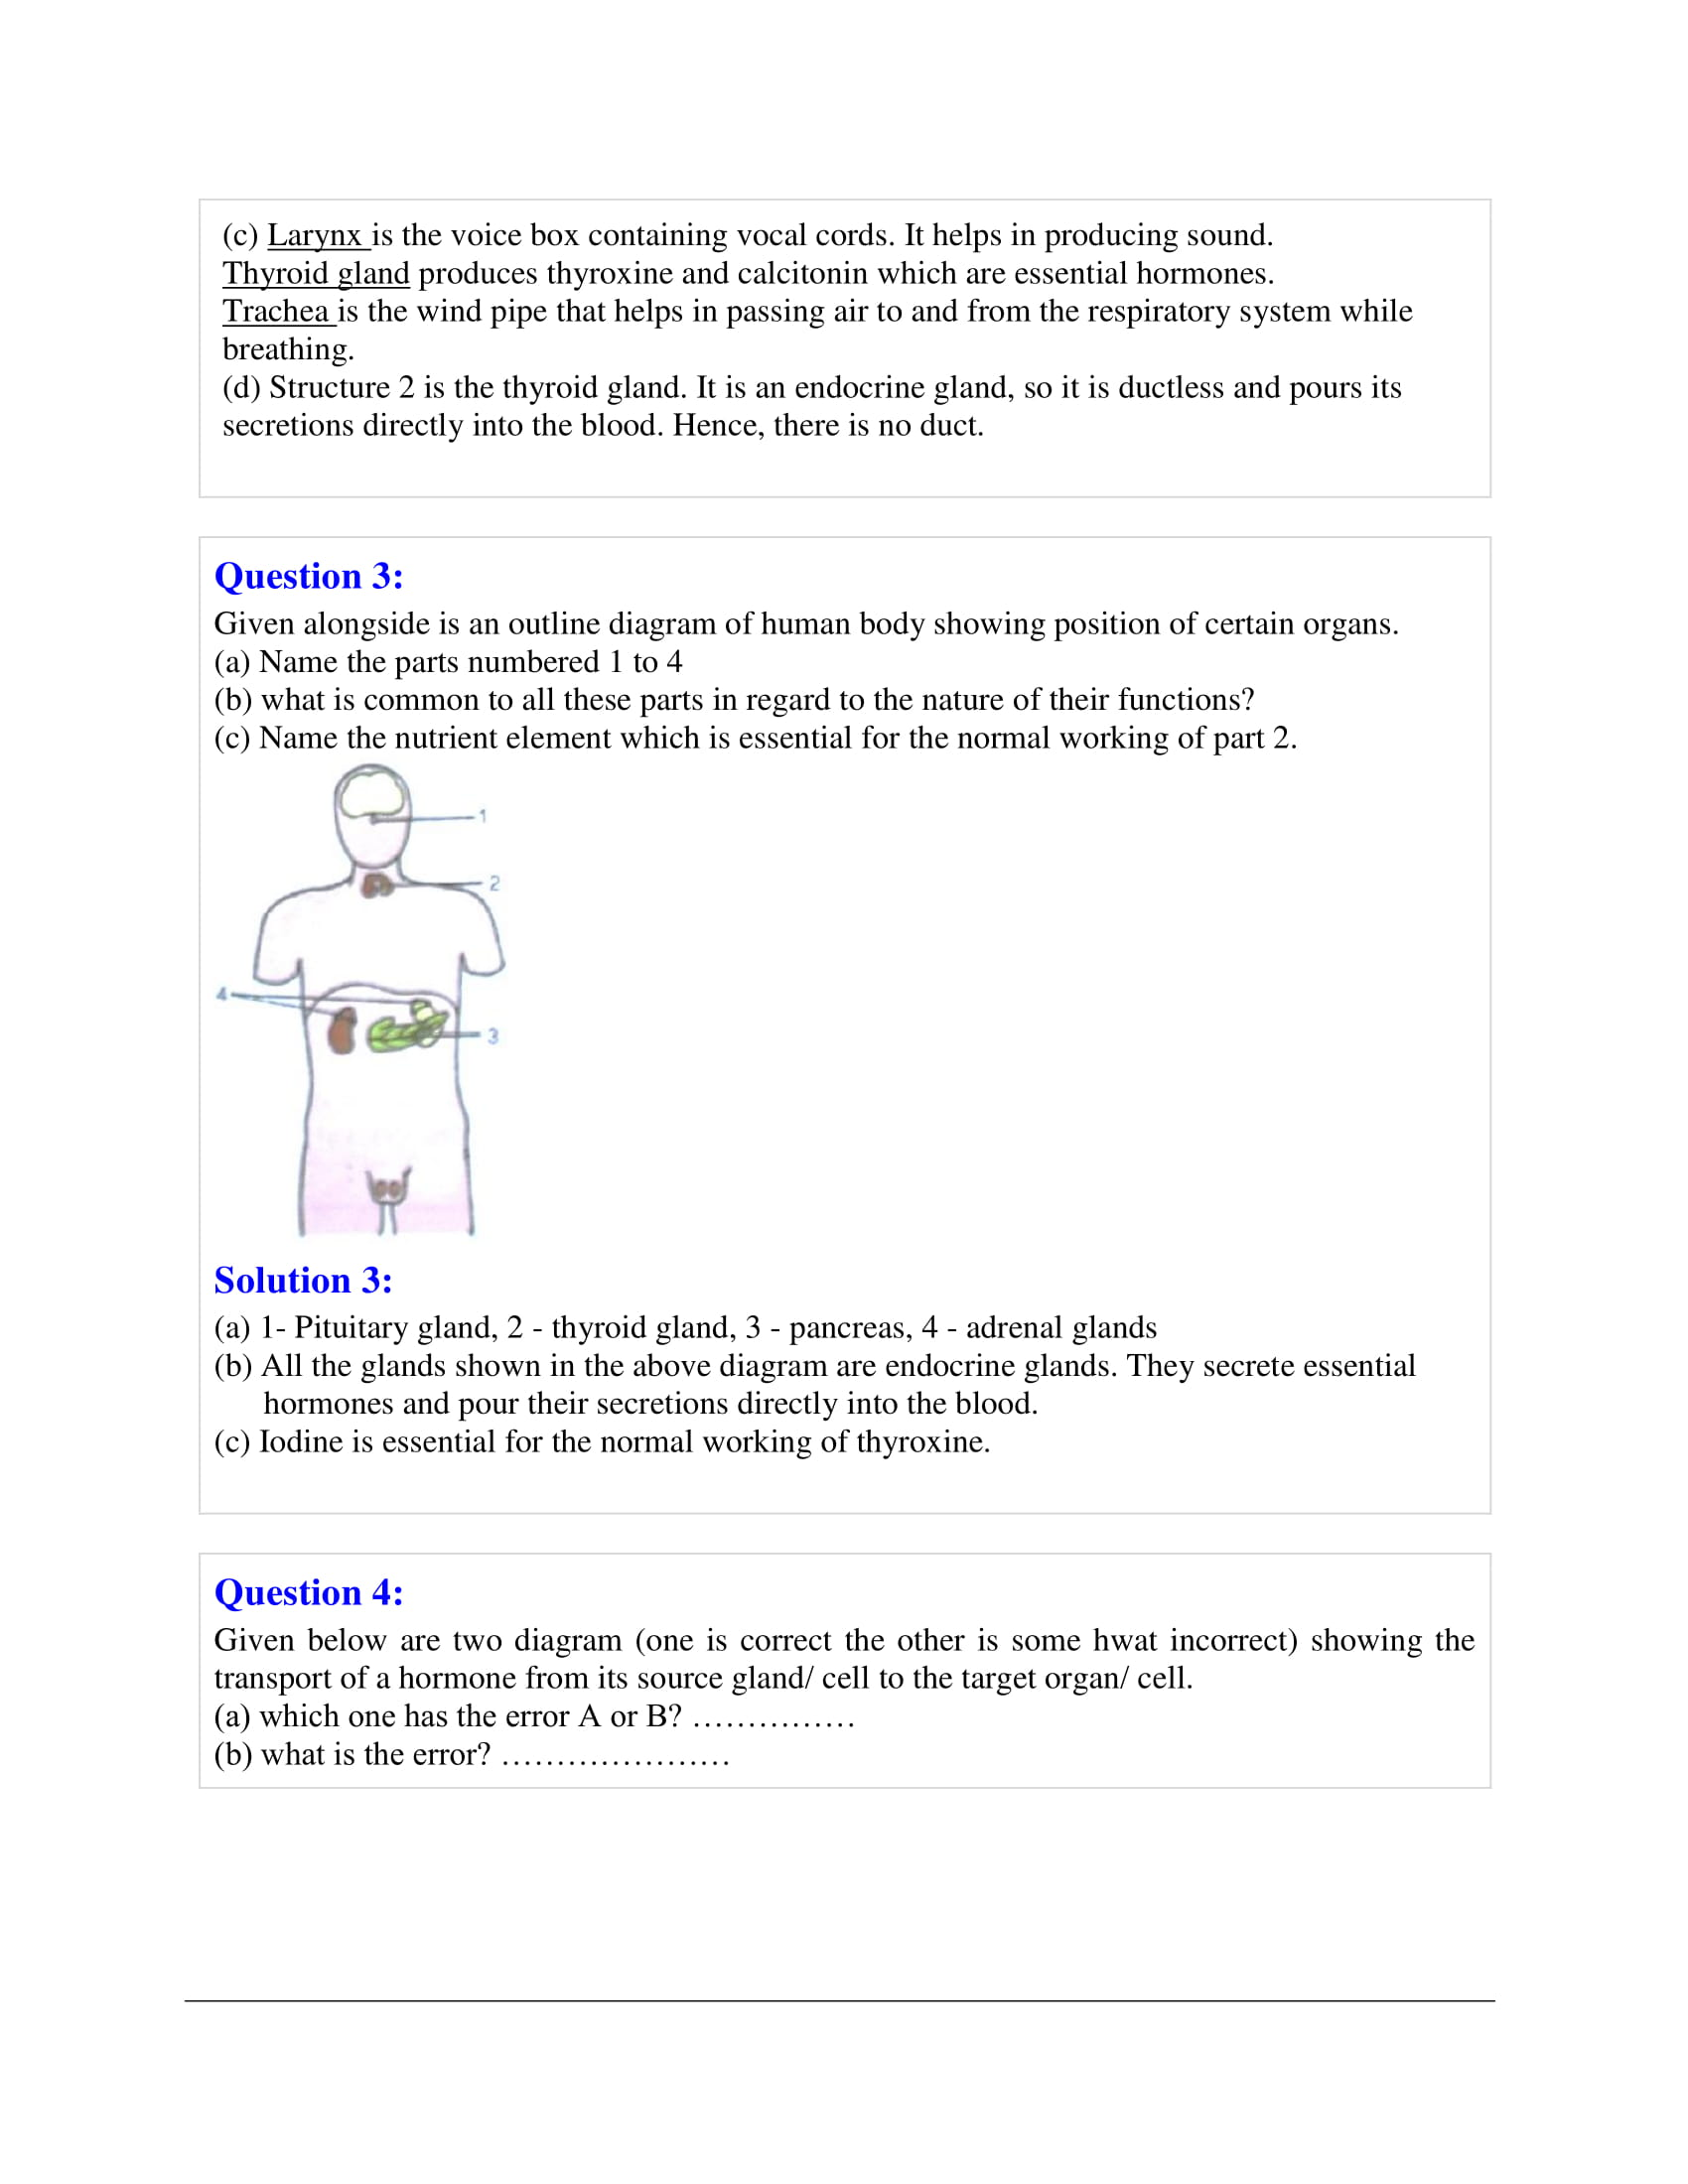 icse-selina-biology-solutions-class-10-chapter-9-endocrine-glands-the-producers-of-chemical-messengers-11